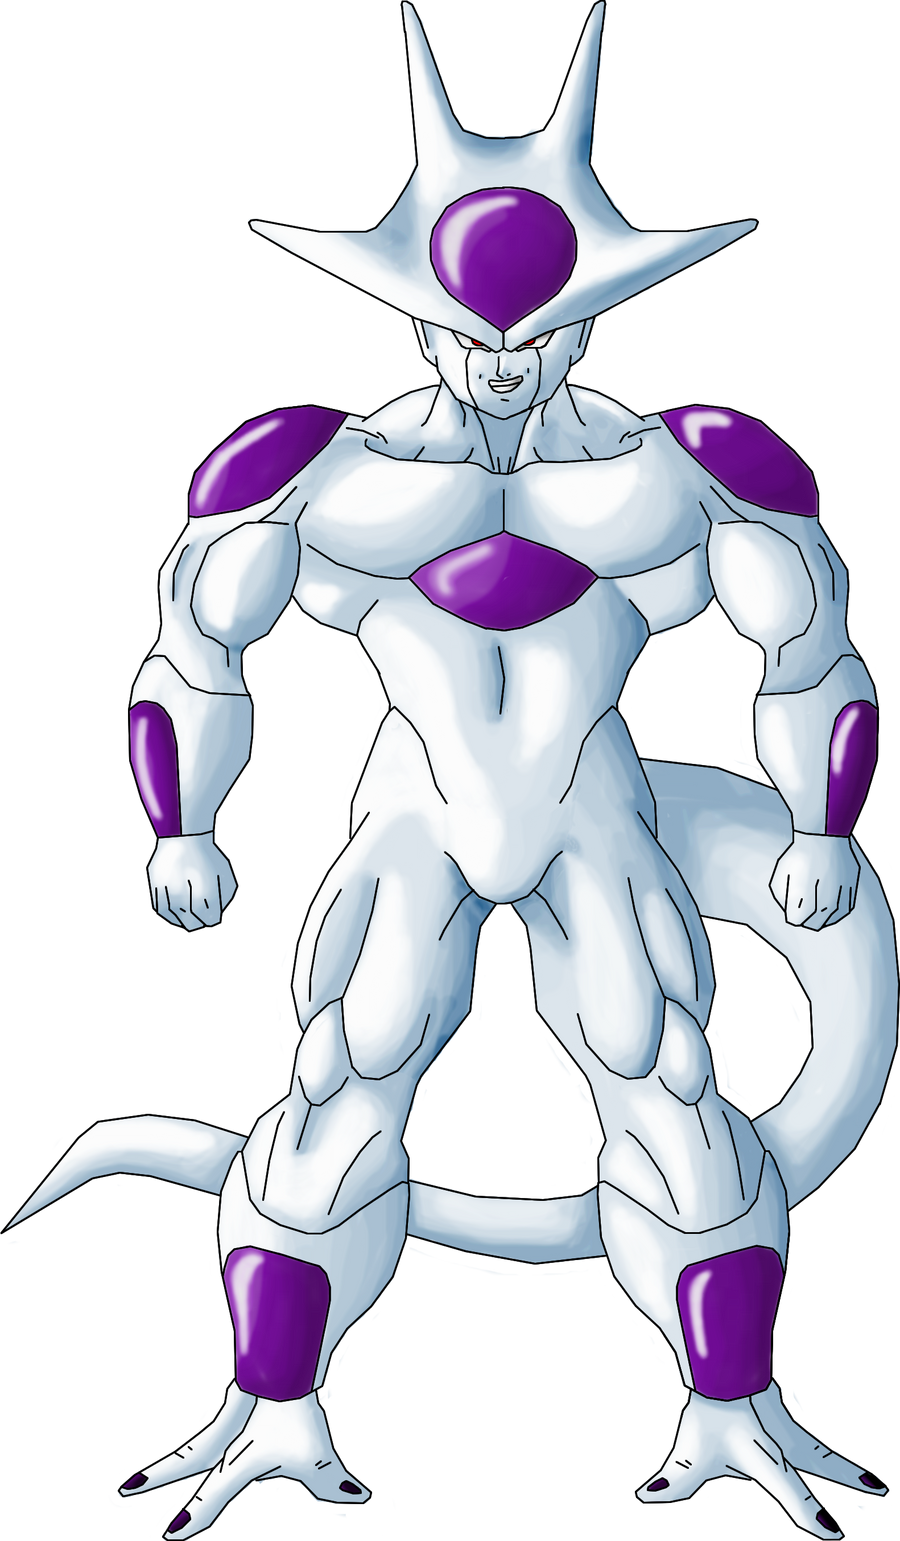 Frieza Fifth Form by Guitar6God on DeviantArt